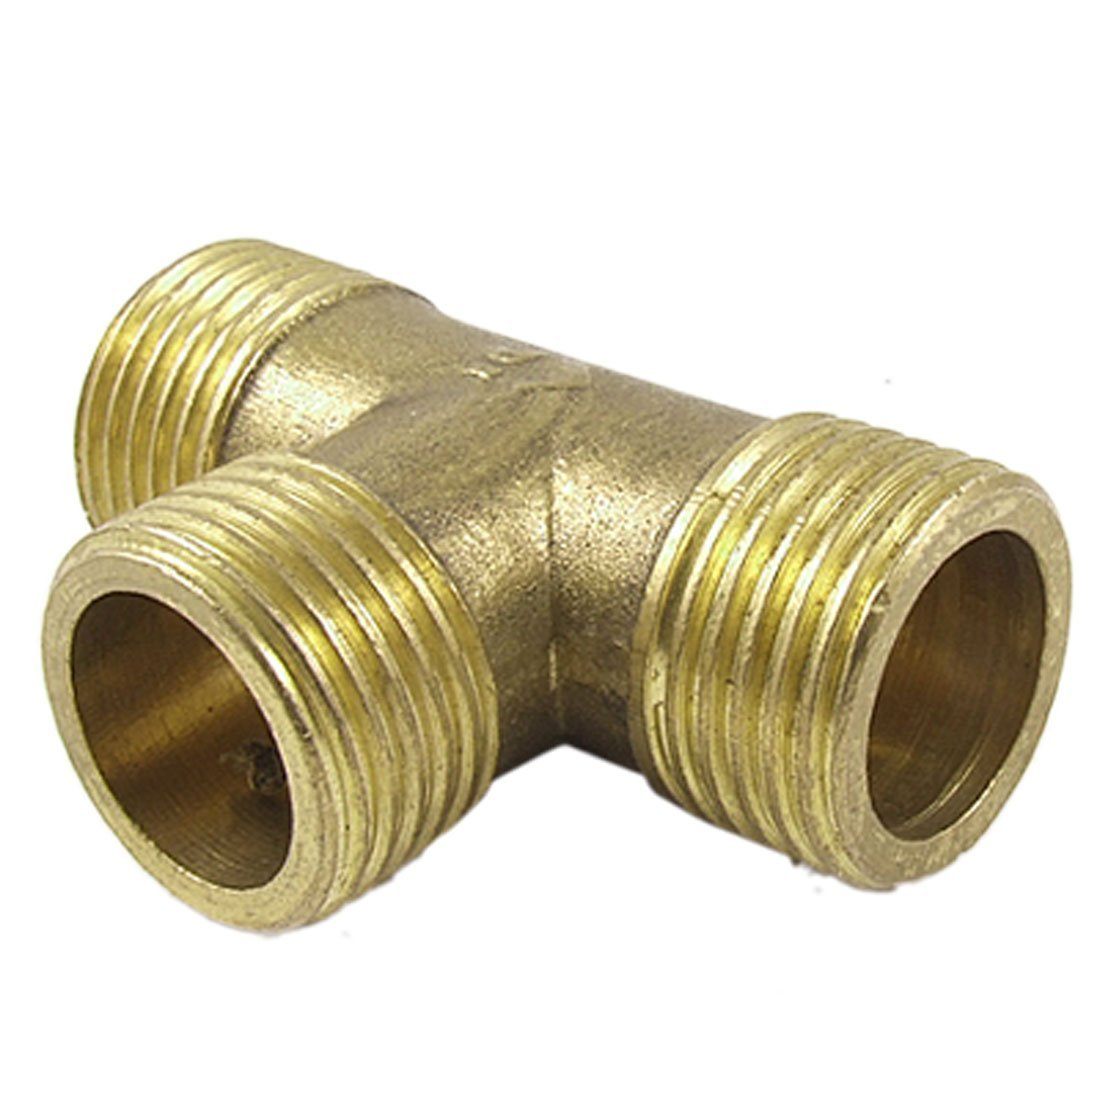 1/2 Inch Pipe Tee Male Adapter Connector Fittings Brass